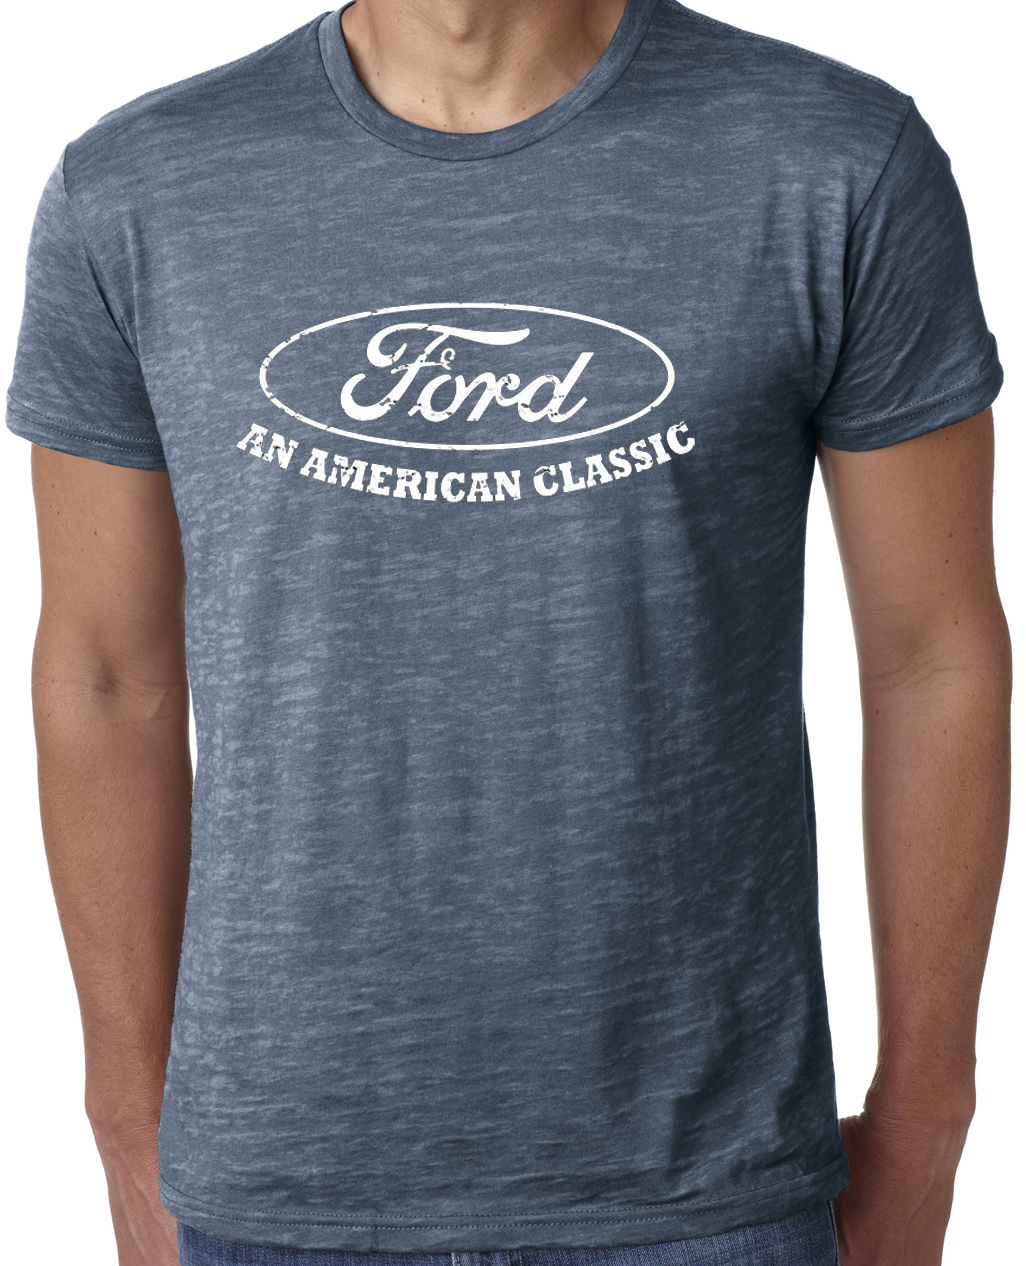 Ford shirt distressed an american classic mens burnout tee for All american classic shirt